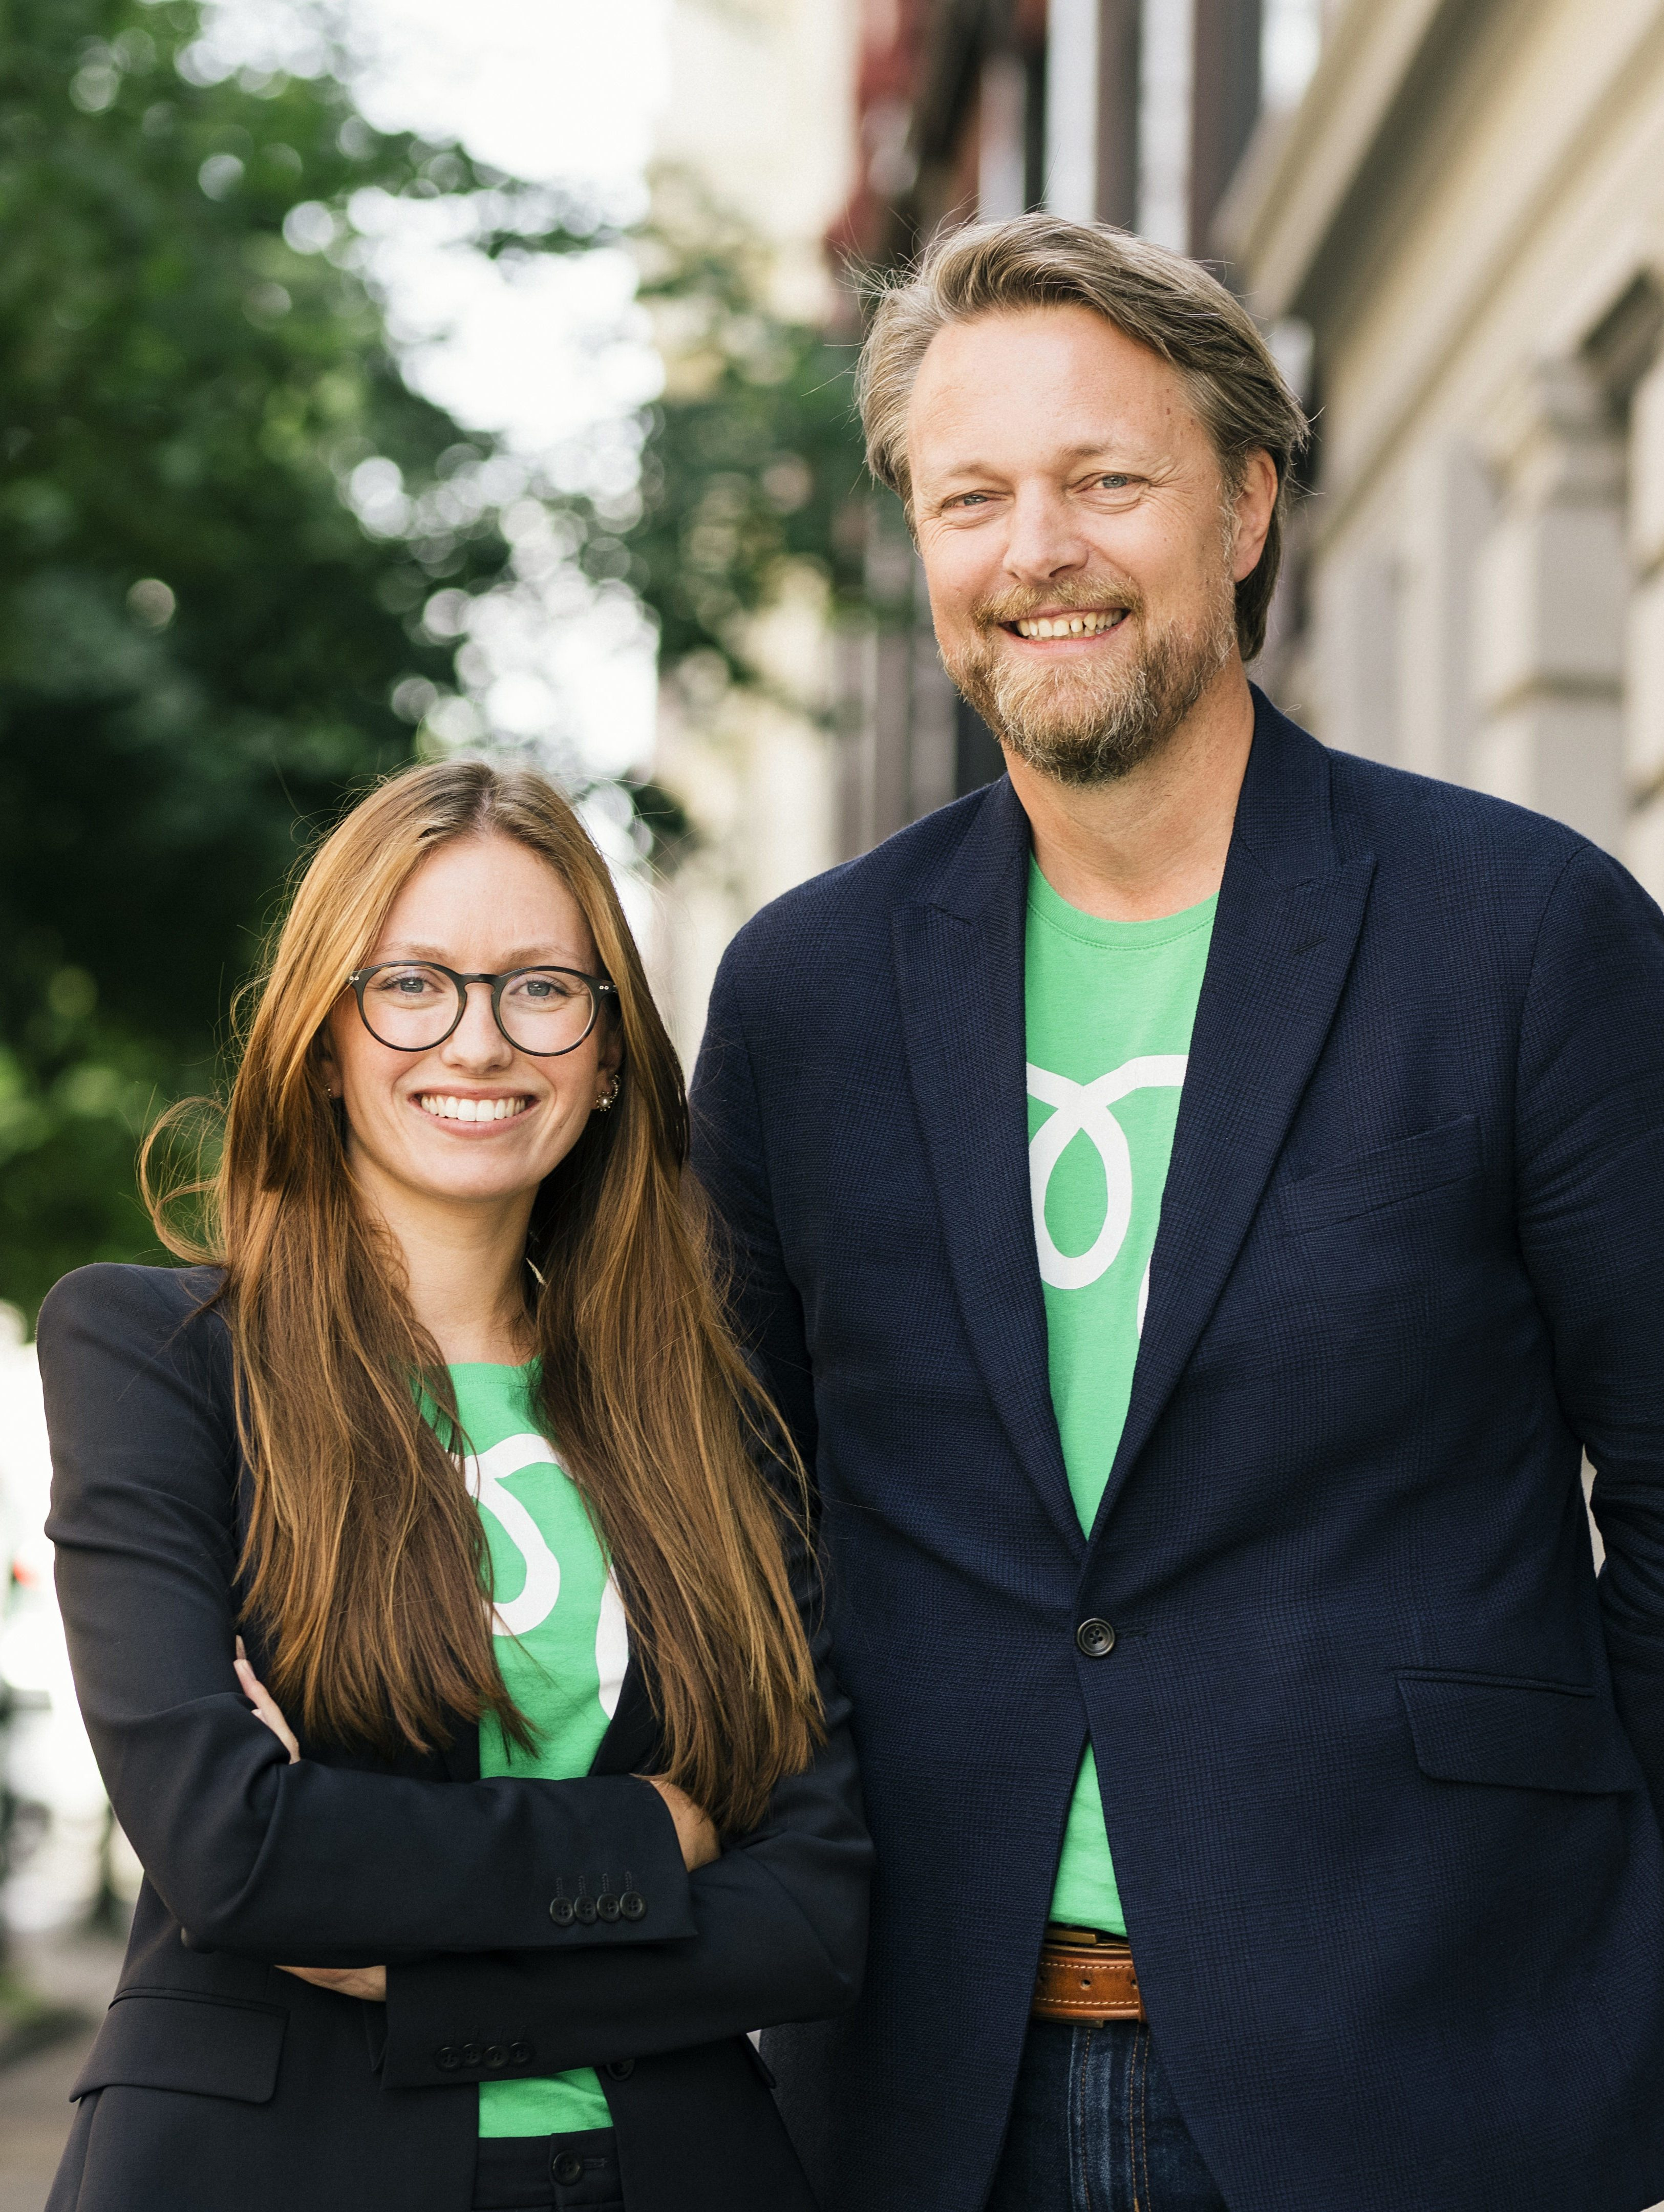 Monner CEO Jarle Holm and Monner CMO Marie Harfjeld - photo